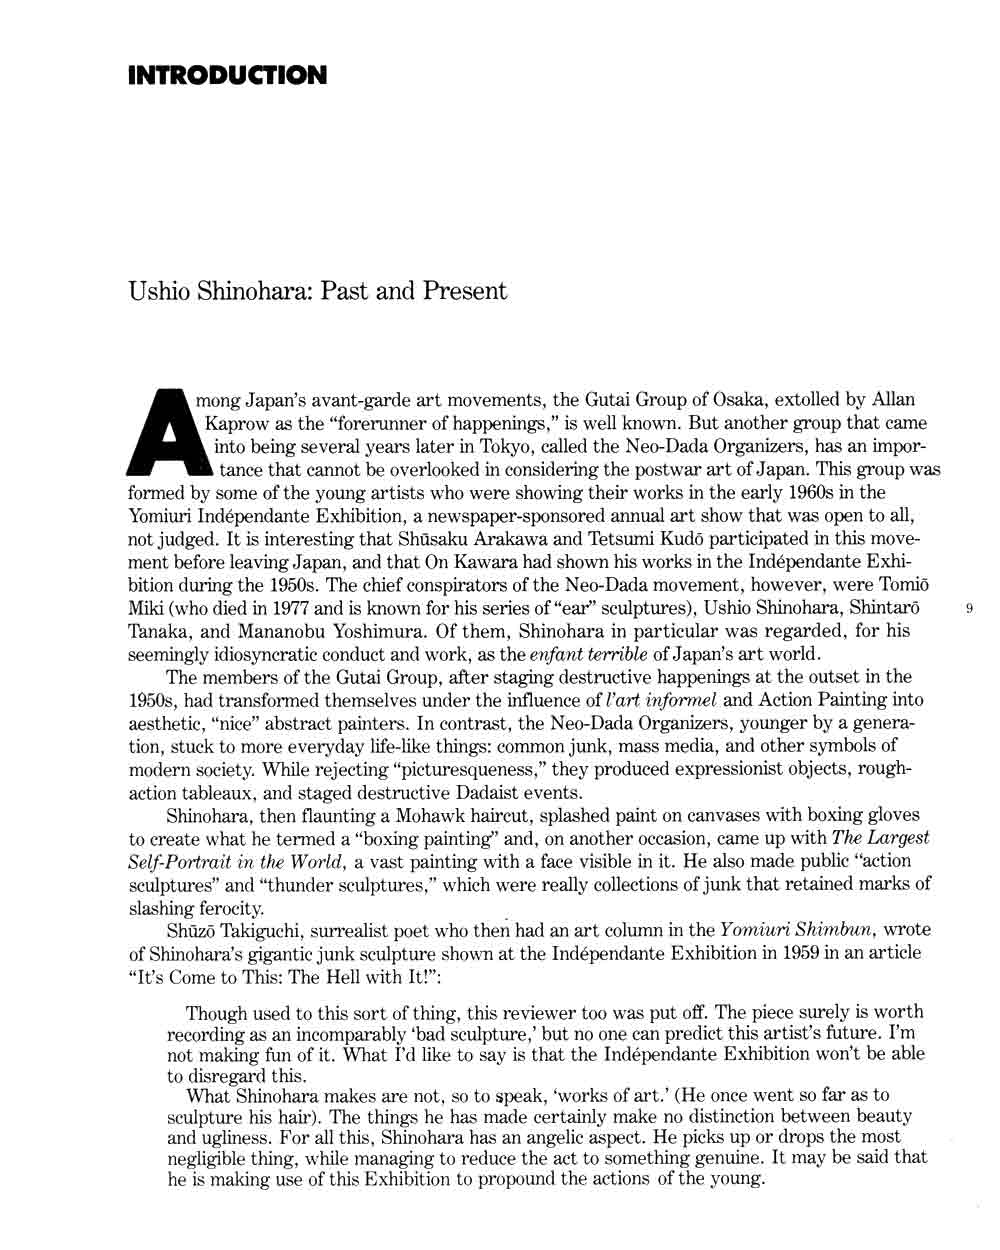 005 How To Cite An Essay Example Ushio Shinohara Past And Present Pg 1 Archaicawful In A Textbook Within Book Apa Mla 8 Full